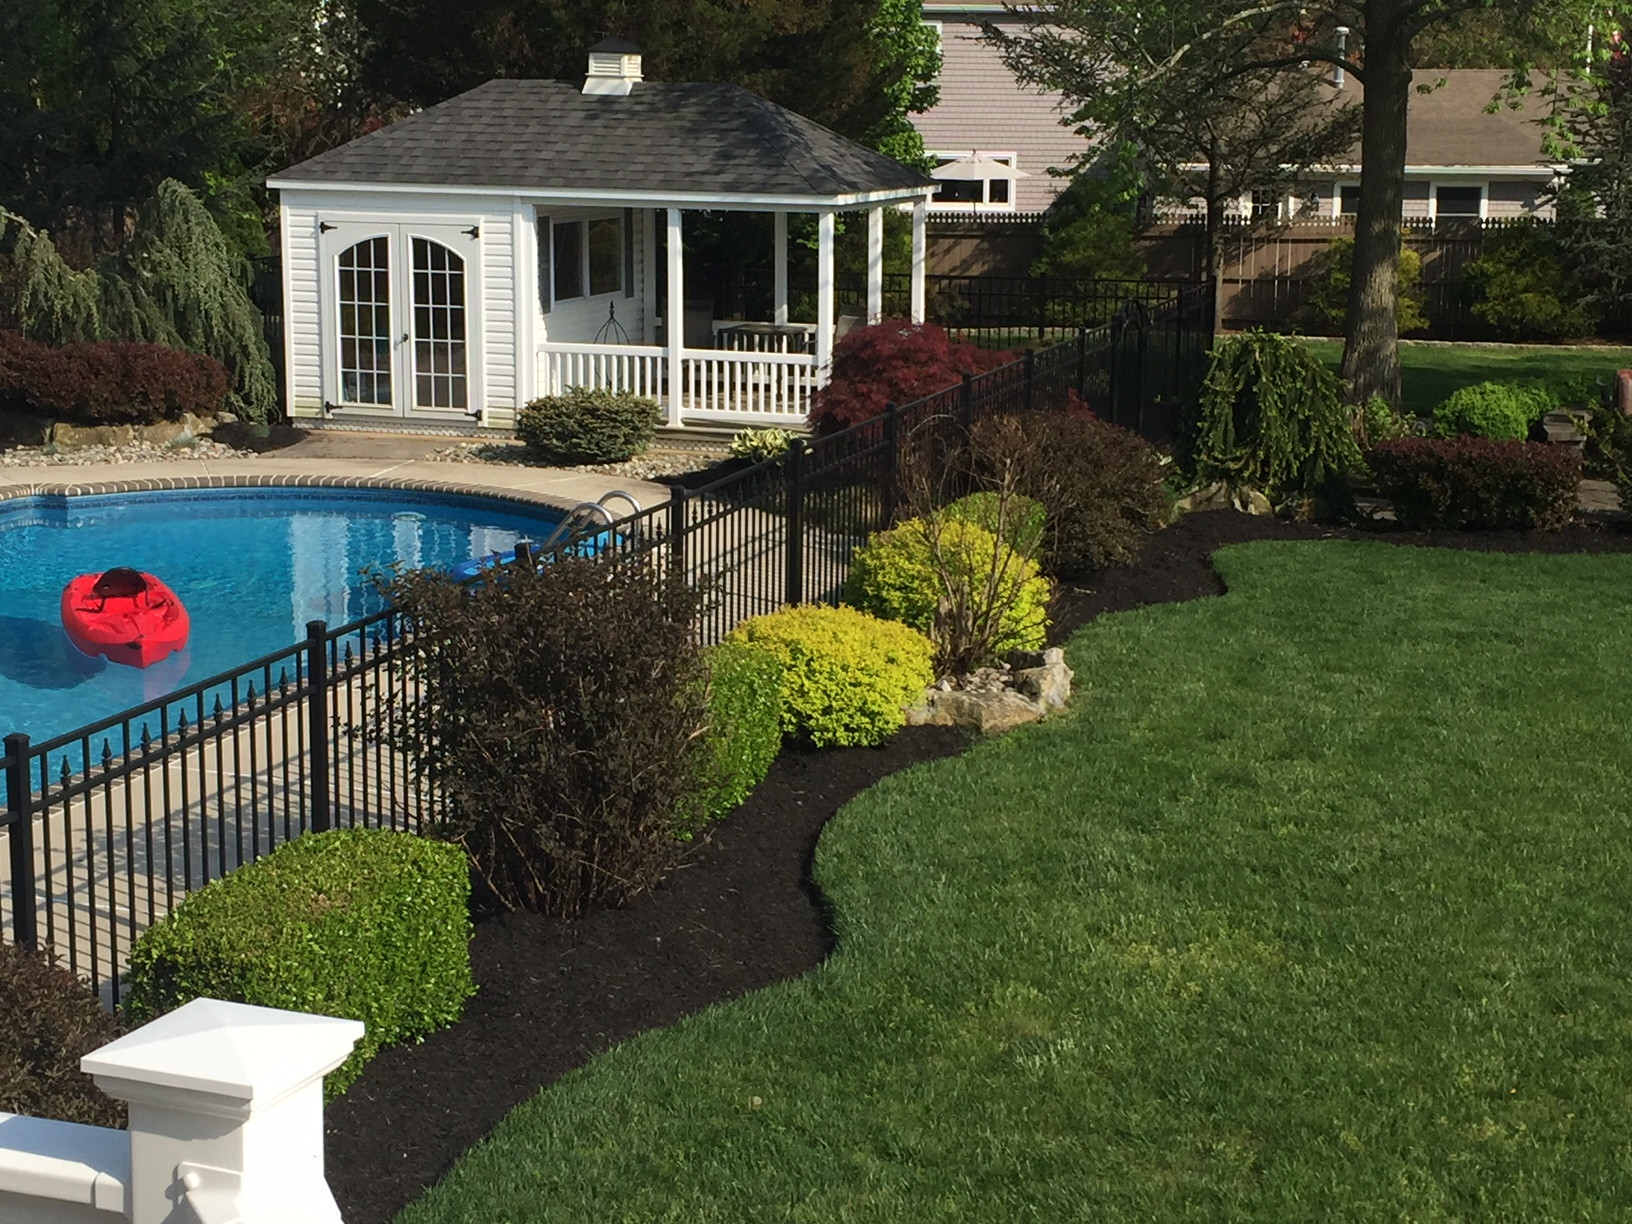 Outdoor Landscape Pool  Refreshing a Swimming Pool Landscape All About The House